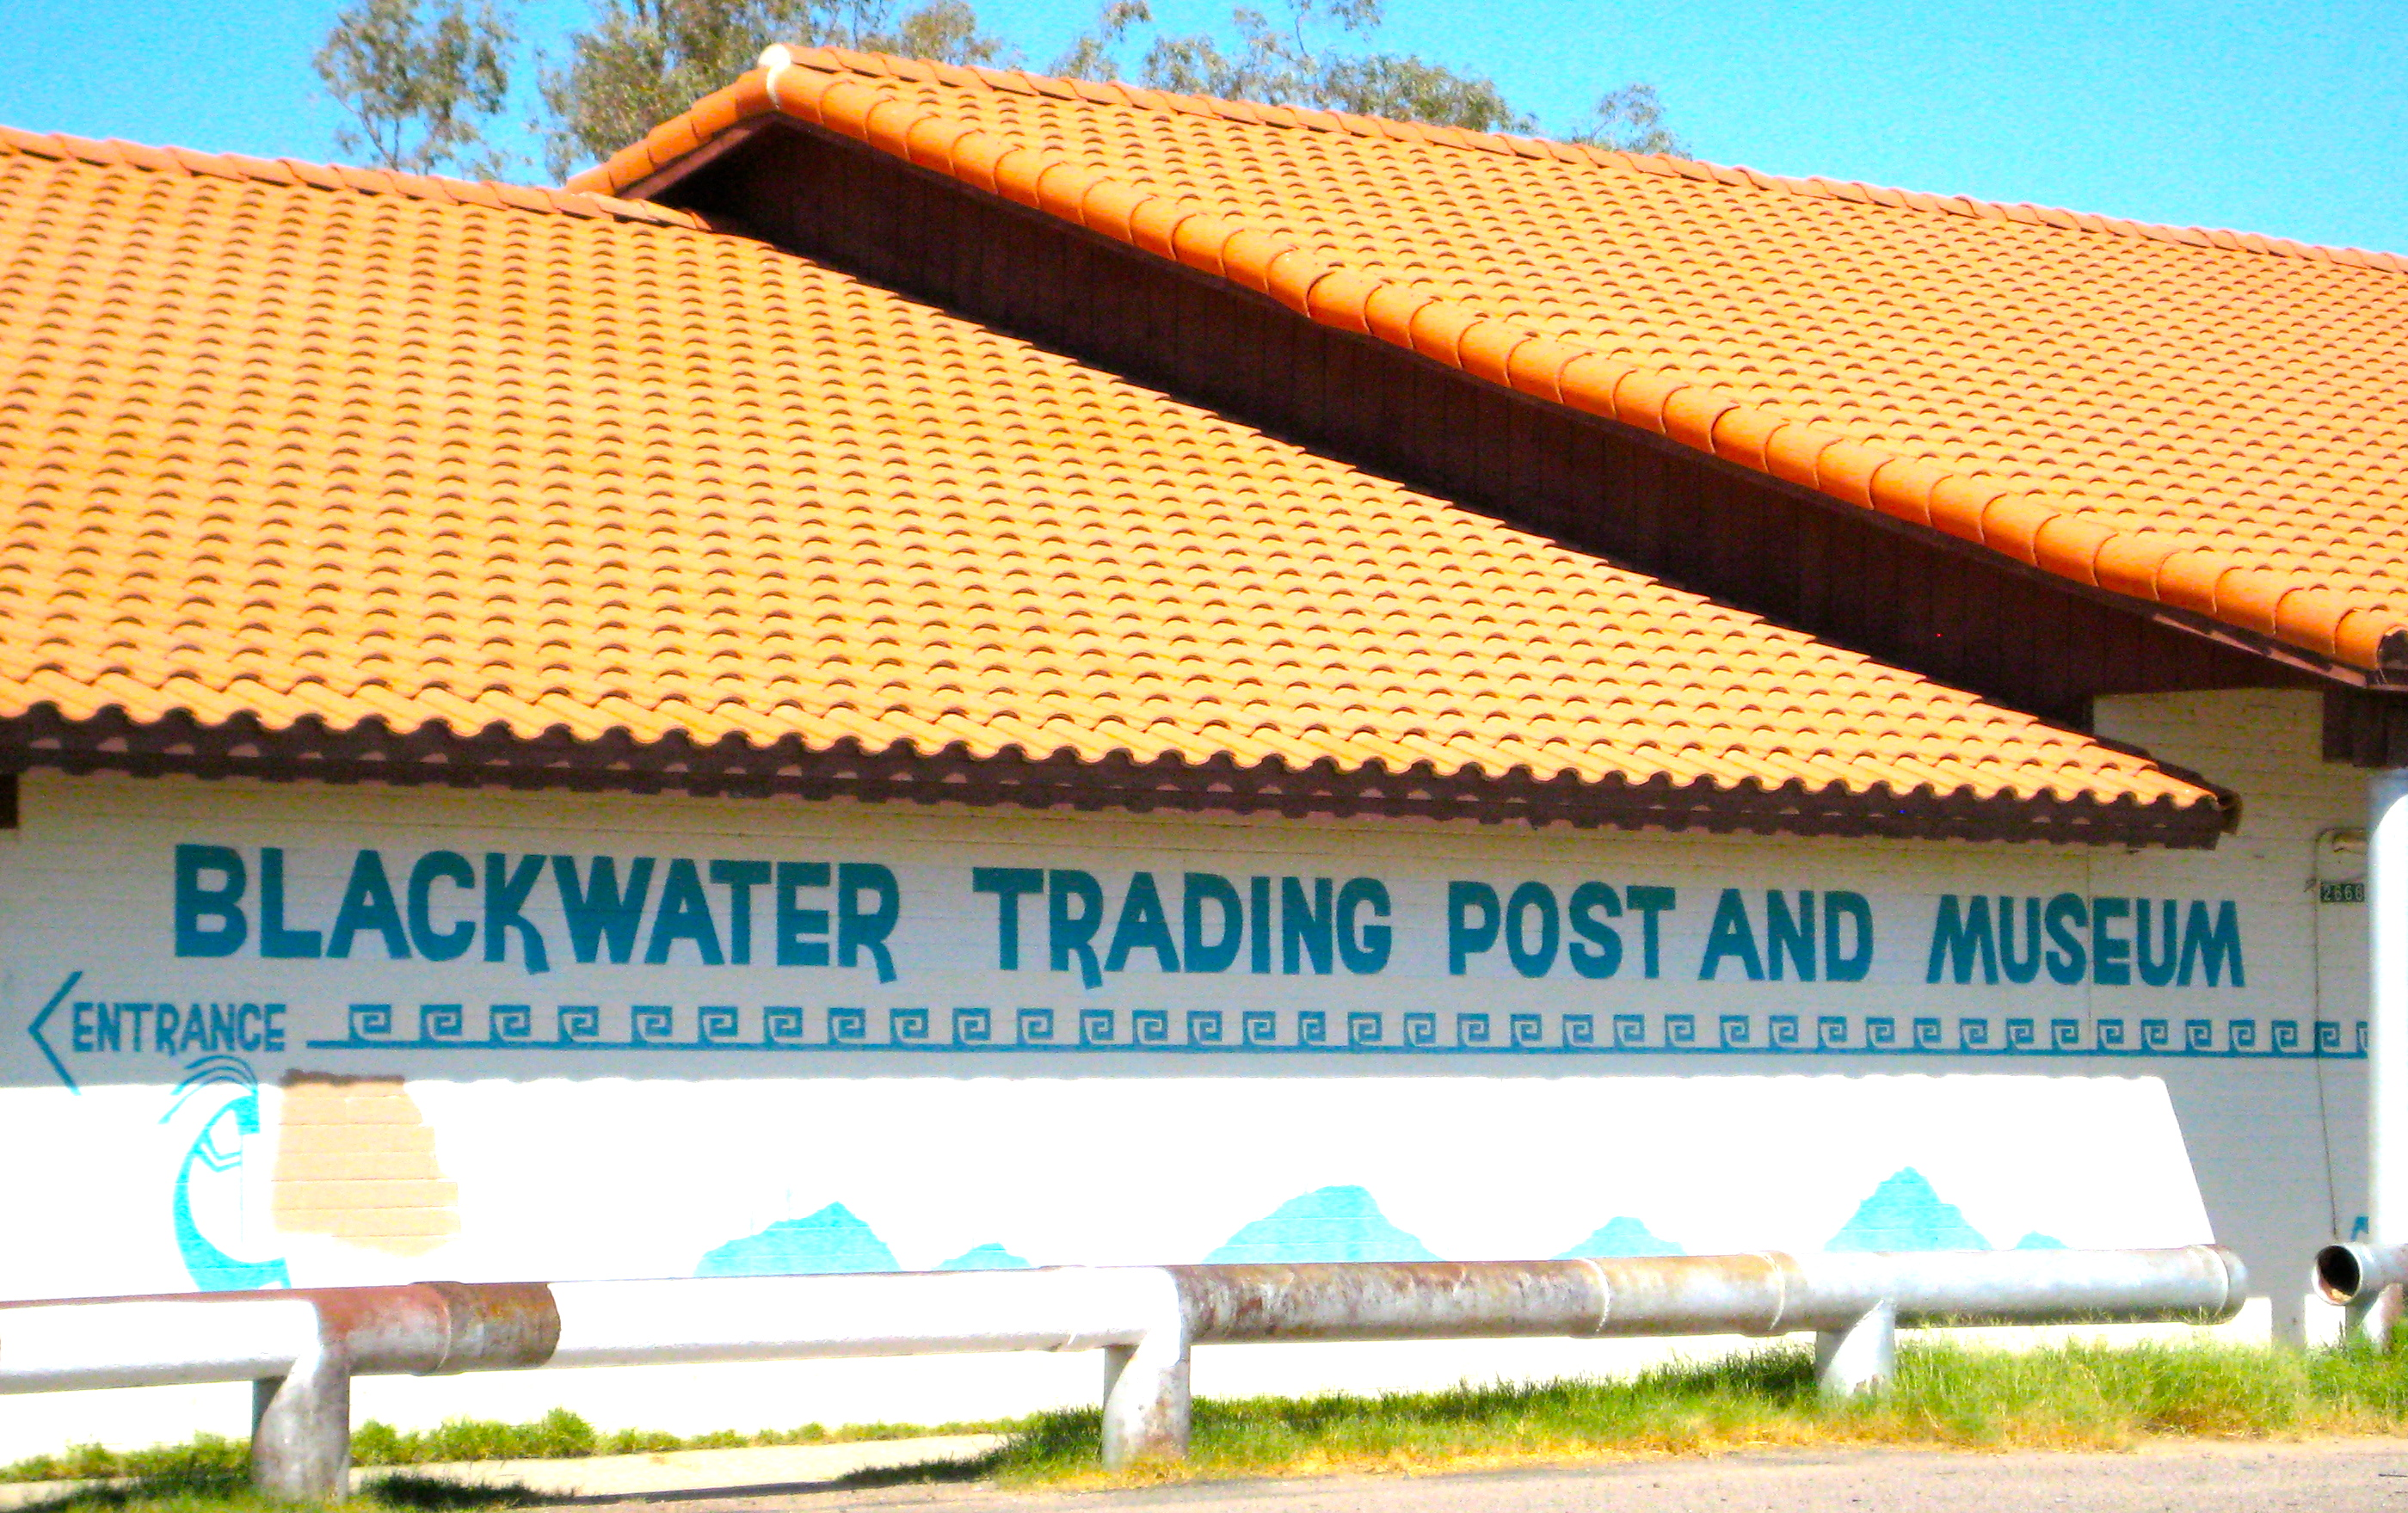 Signs of Arizona | Landmarks | Blackwater Trading Post, Blackwater